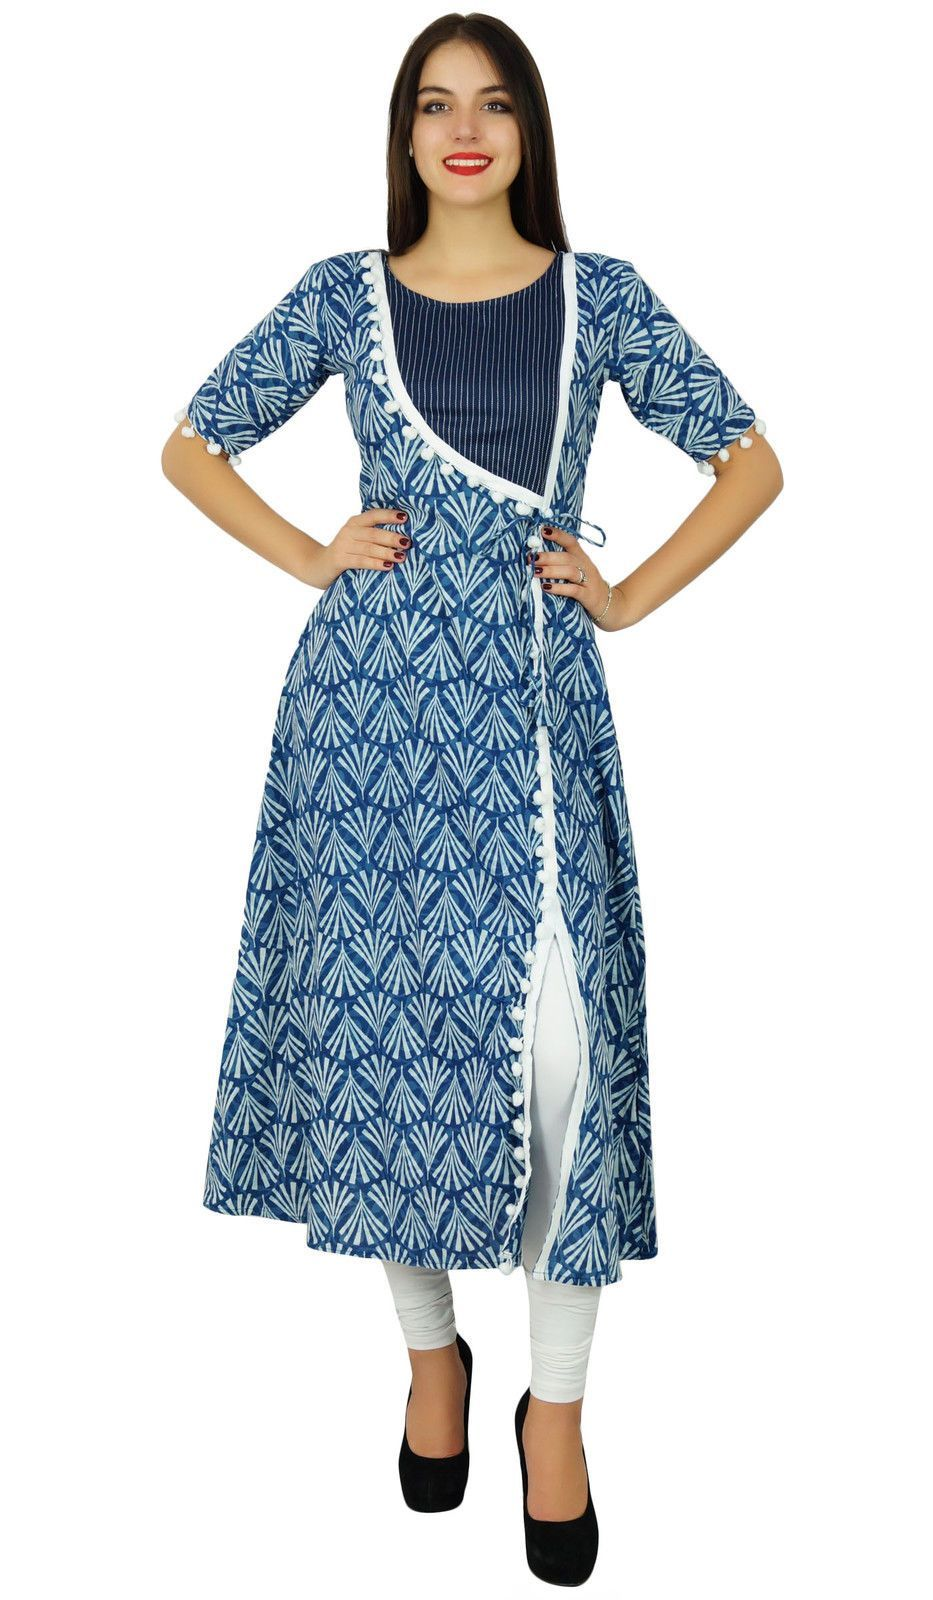 d2a4d45301dc Bimba Designer Angrakha Style Cotton Kurta Long A-Line Kurti Dress Indian  Women